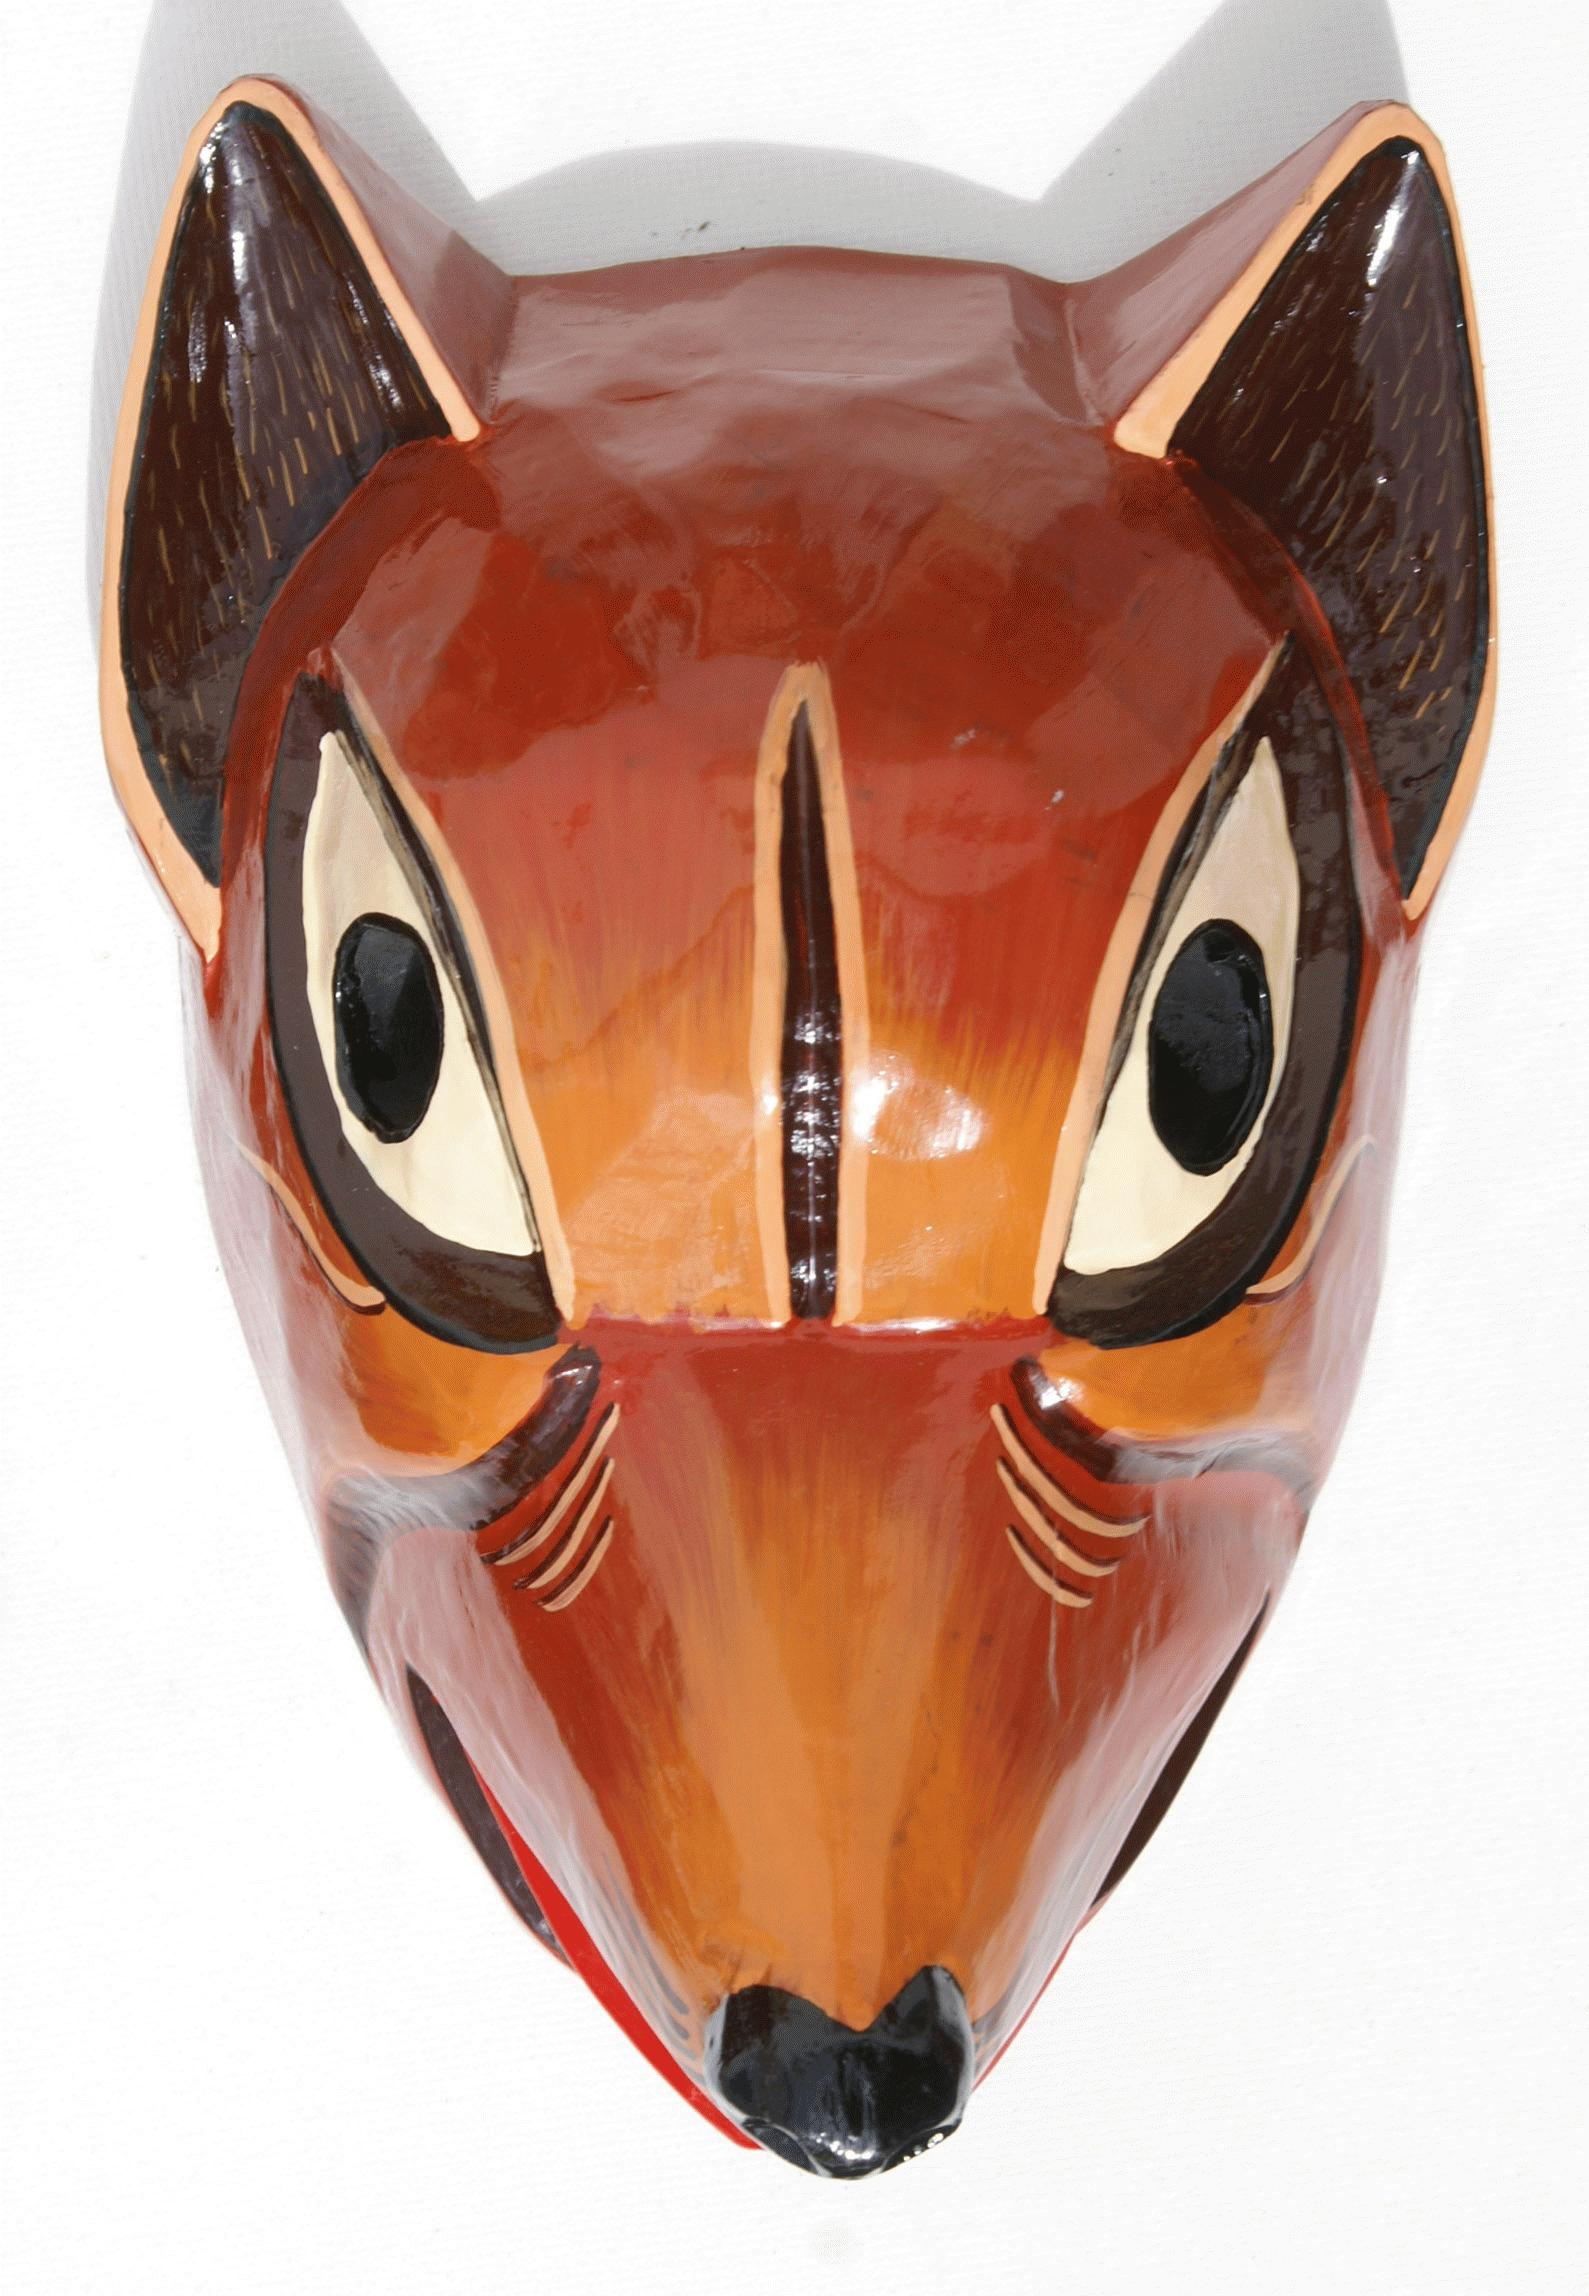 Dog Wooden Mask Crafts From Ecuador